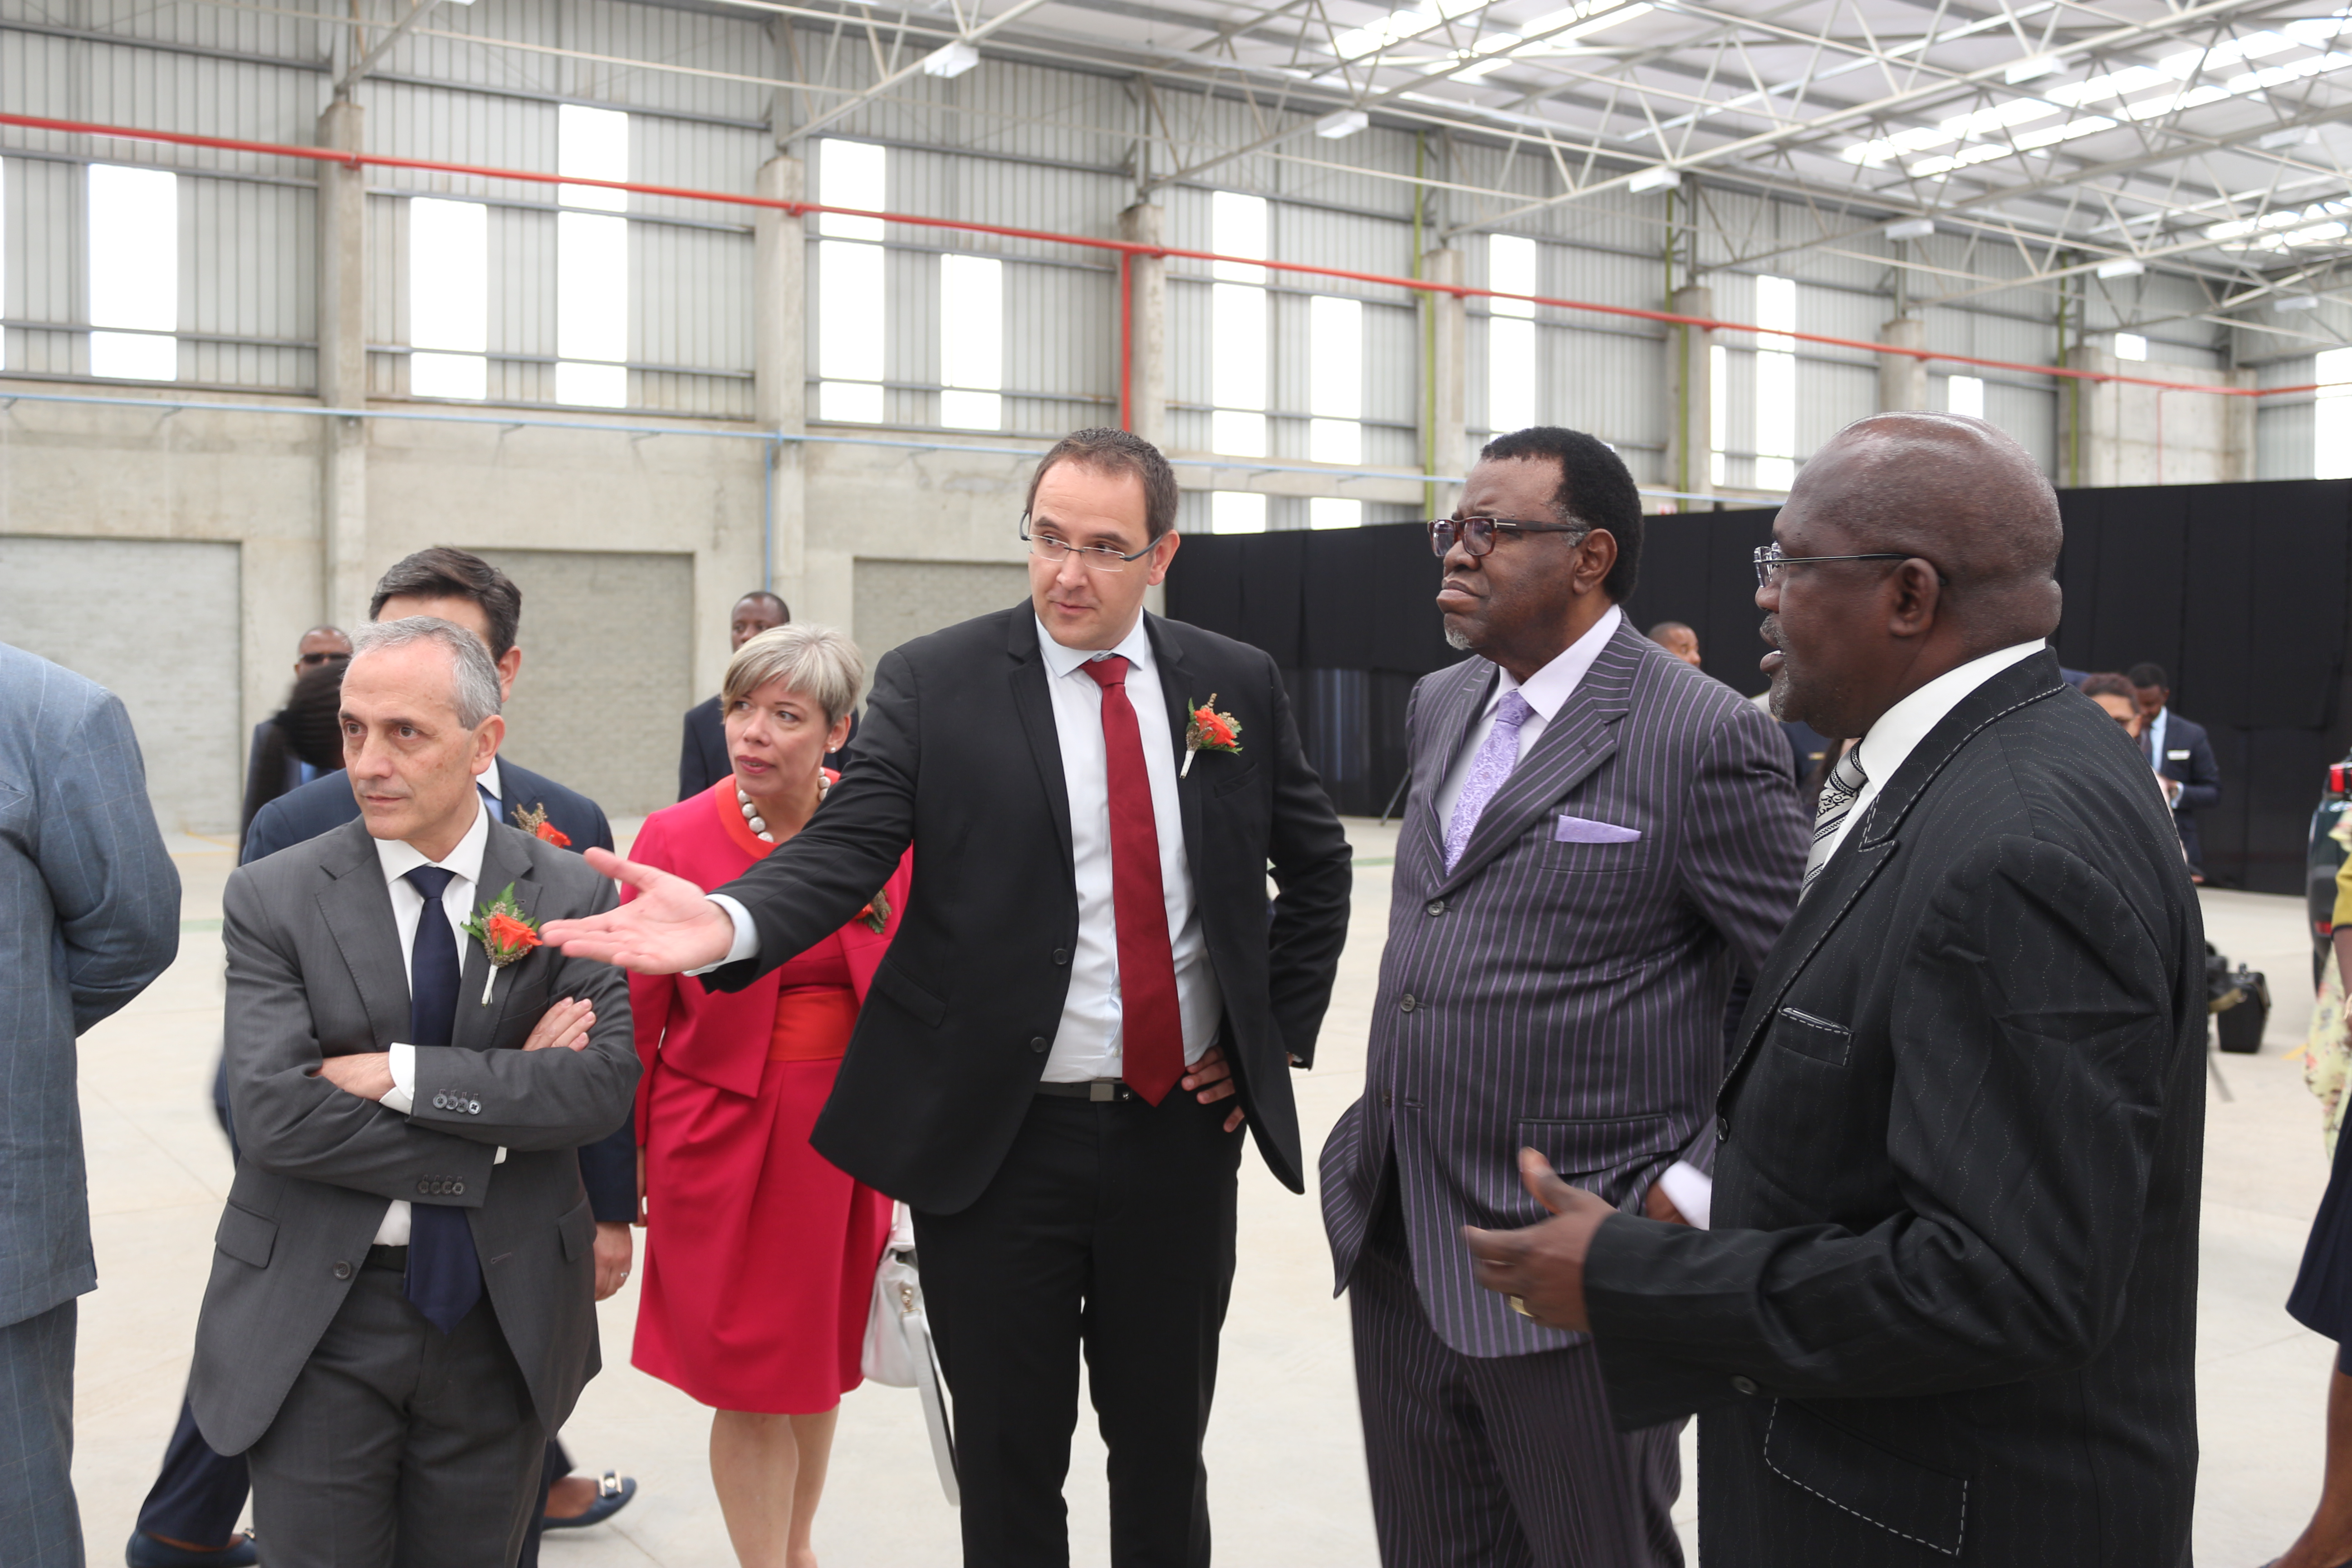 Inauguration of the Peugeot Opel Assembly Namibia (POAN) by his excellency (...)